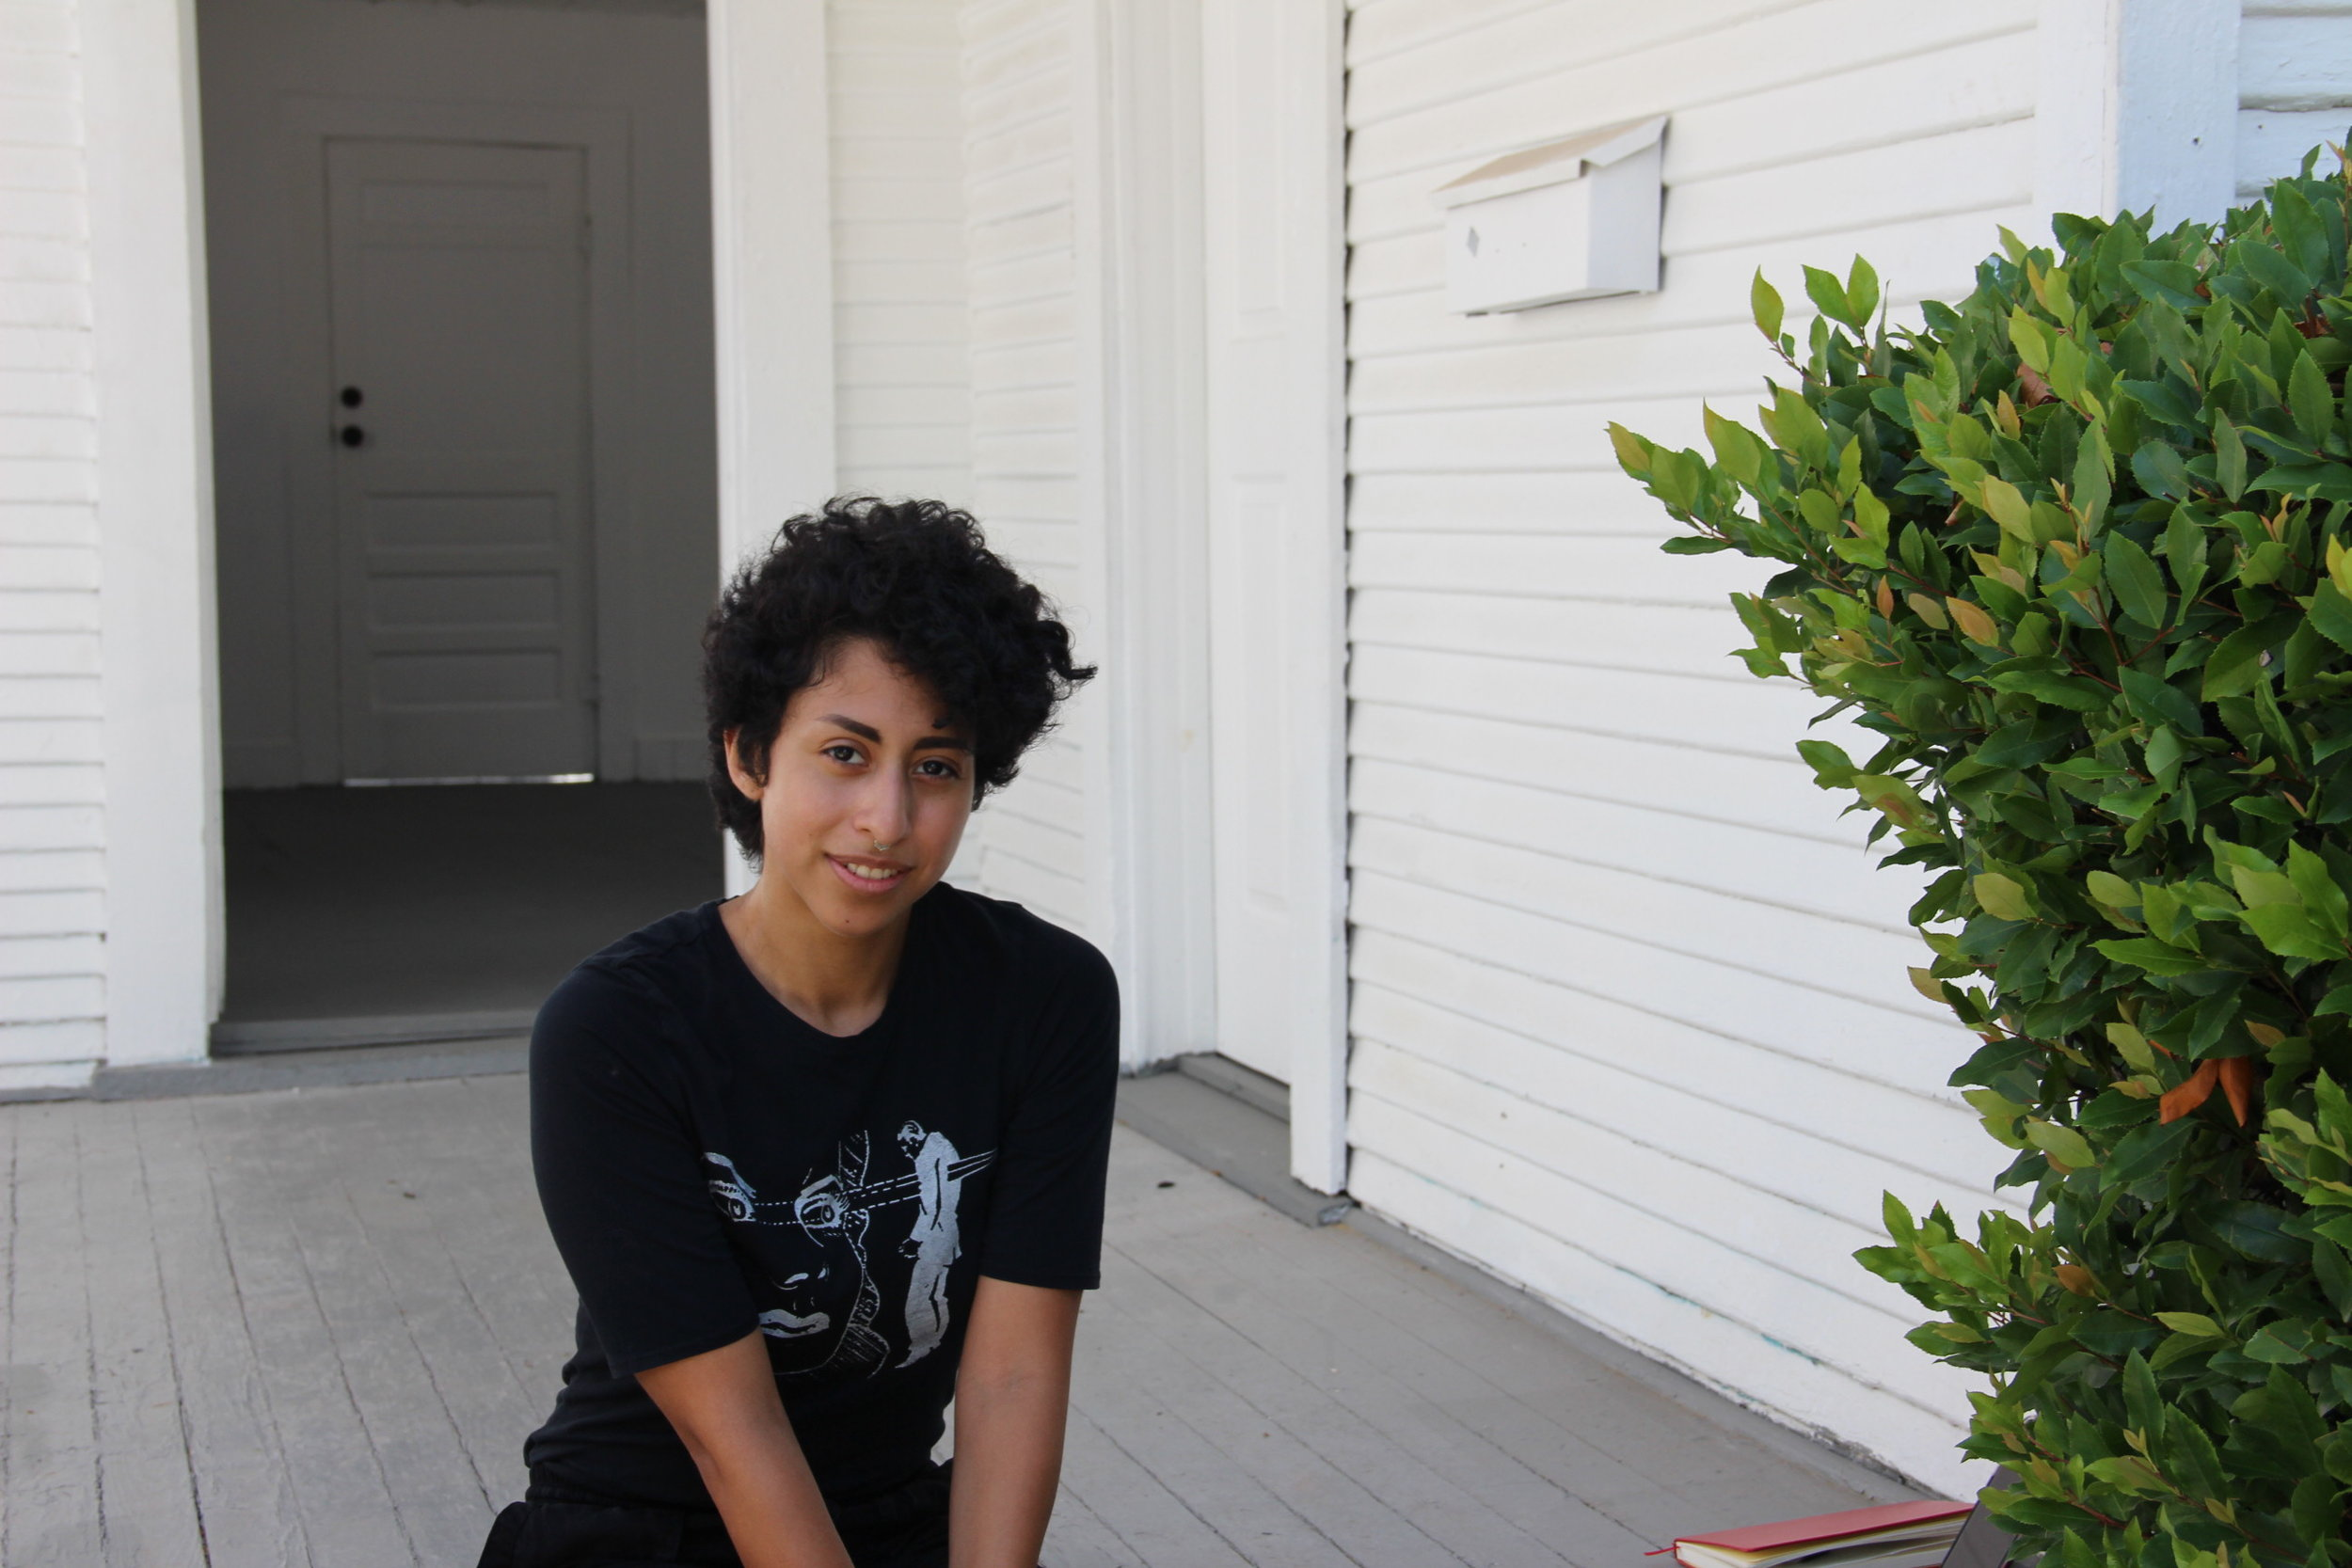 Summer Studios resident Charli Sol on the porch of their art house.